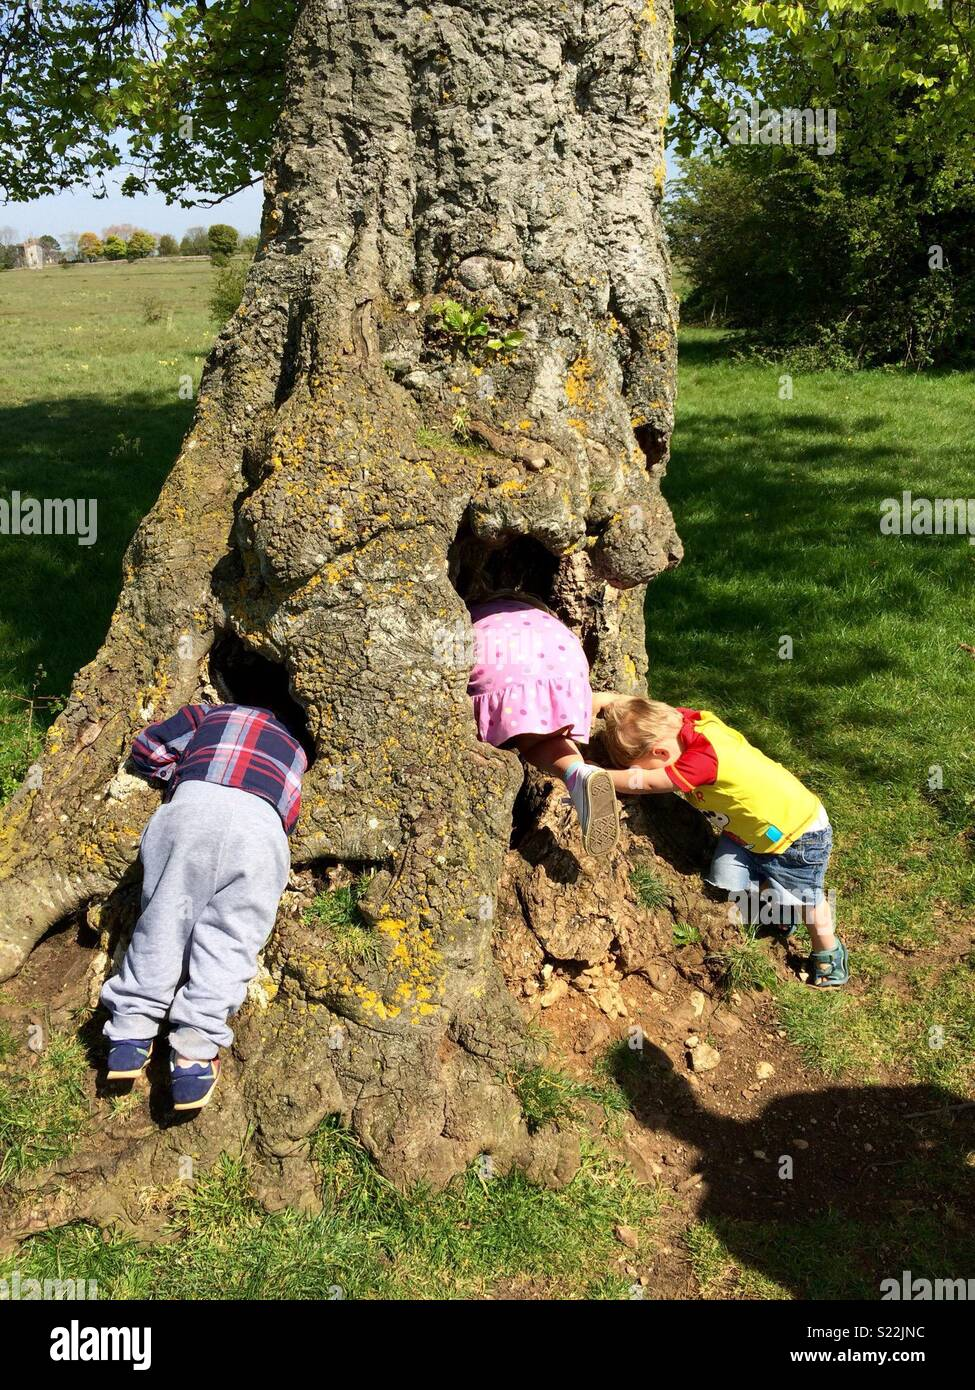 Children playing by a large old tree in the countryside - Stock Image